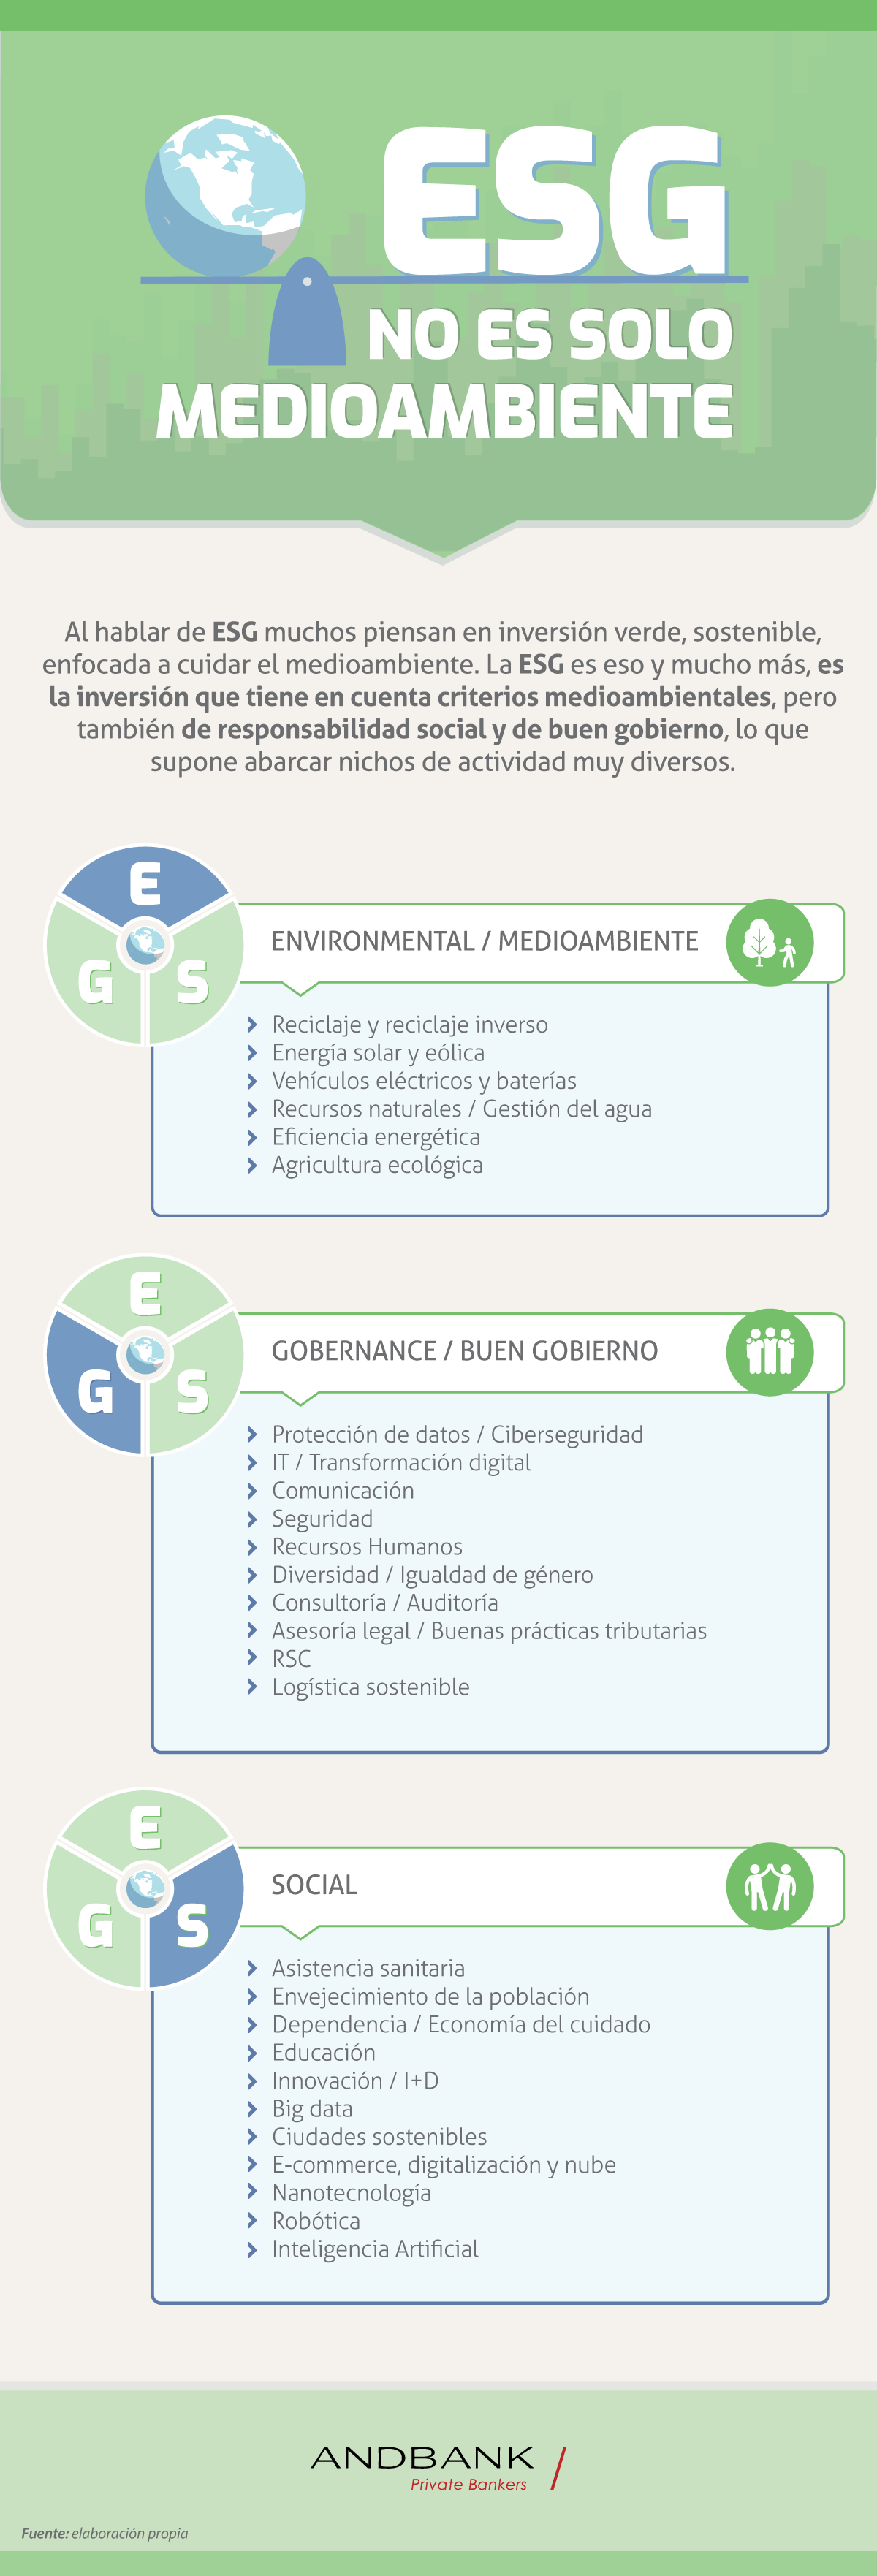 Andbank infografia ESG inversion responsable